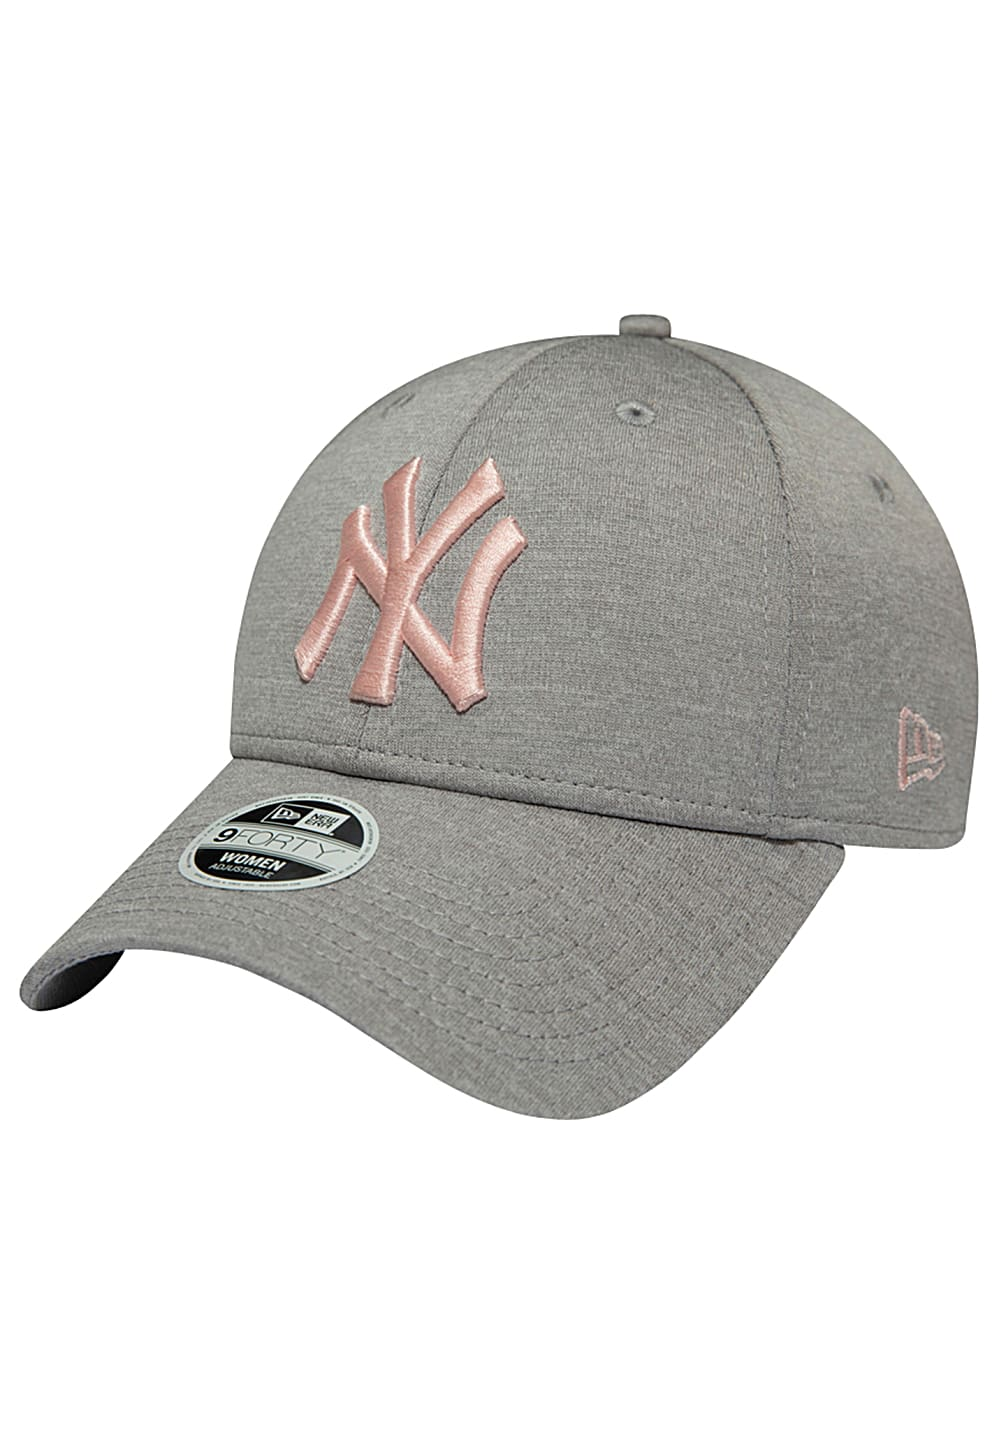 b9e7a387e NEW Era 9Forty Shadow Tech New York Yankees - Snapback Cap for Women - Grey